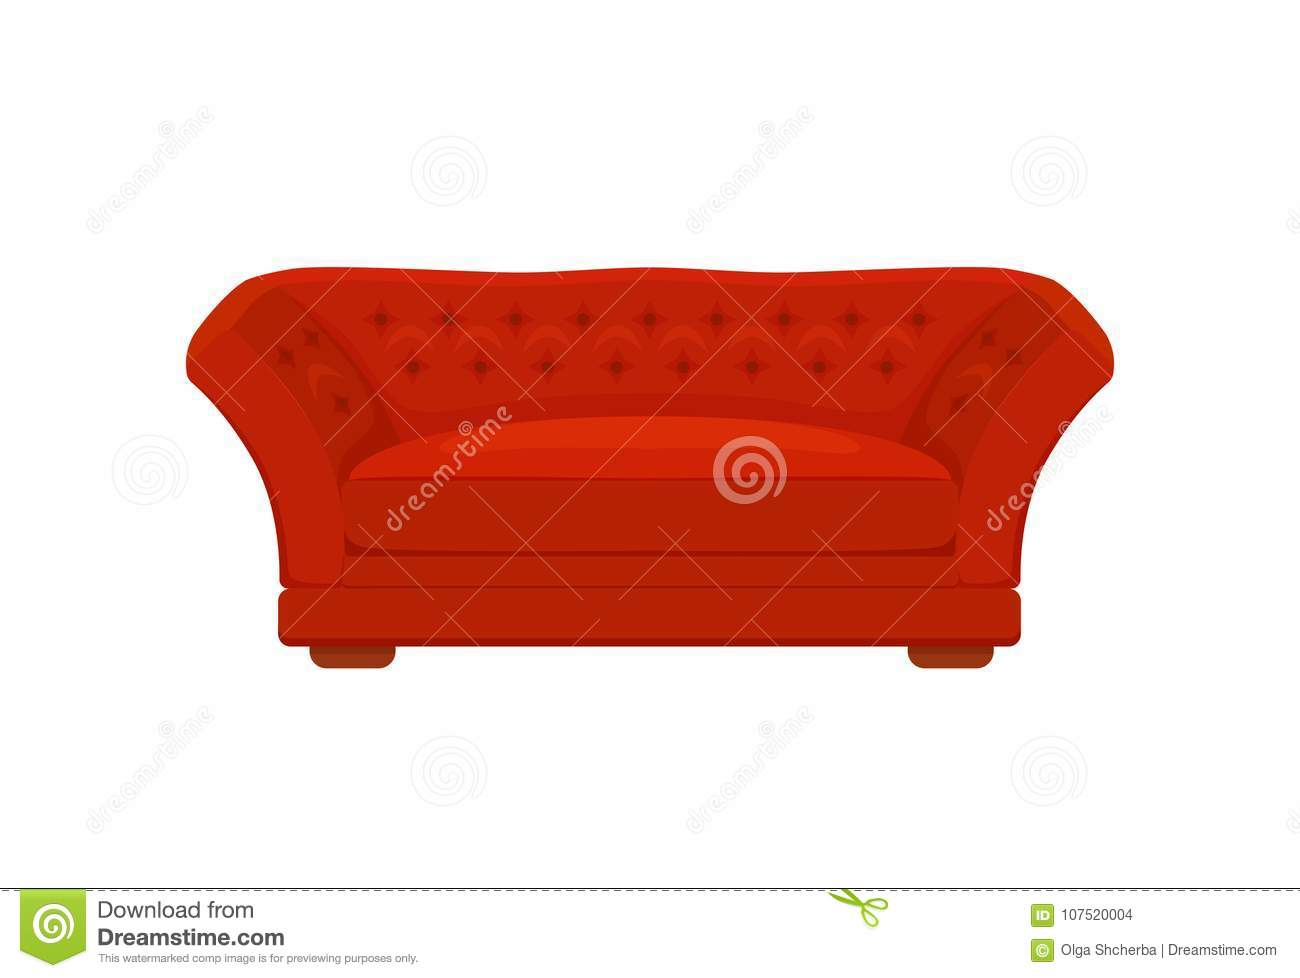 Sofa And Couches Red Colorful Cartoon Illustration Stock Vector